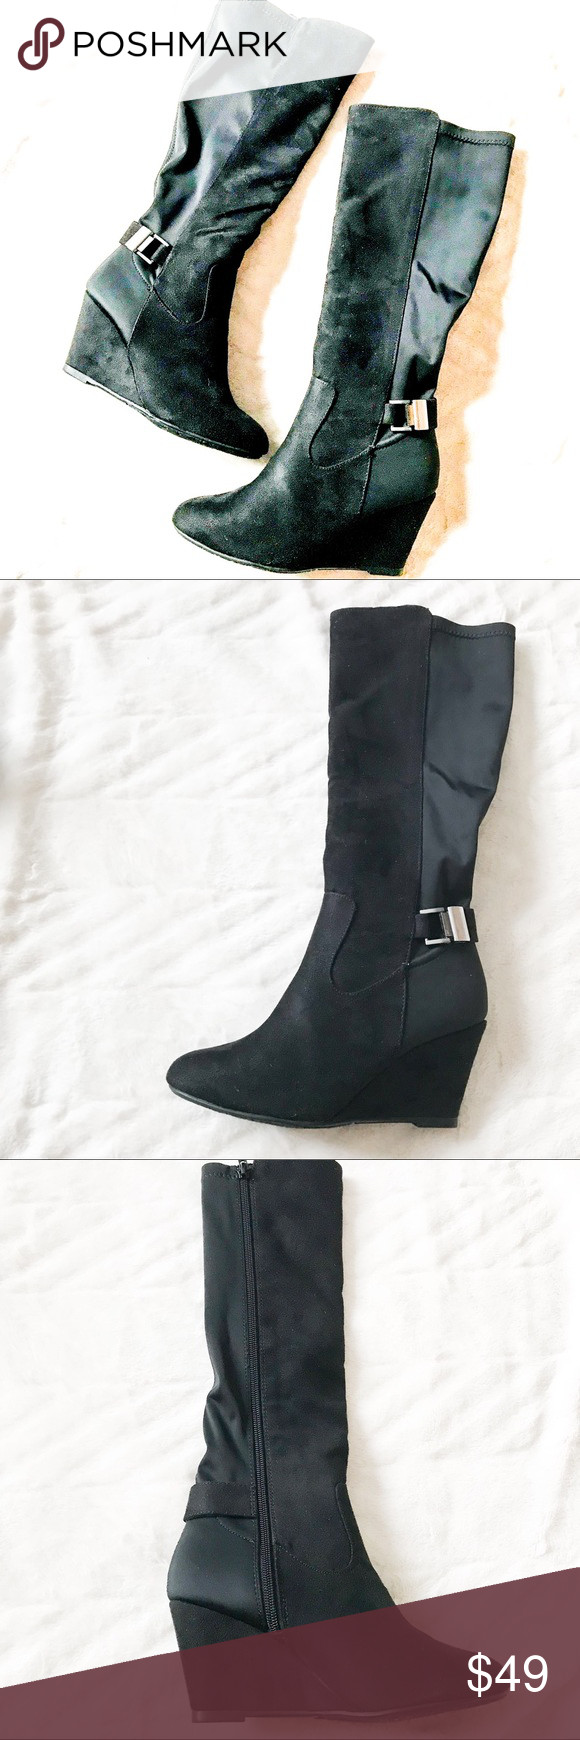 8b53c95df1f Chinese laundry black long boots with buckles Chinese laundry black long boots  with buckle. Size 6. New in box. Chinese Laundry Shoes Over the Knee Boots